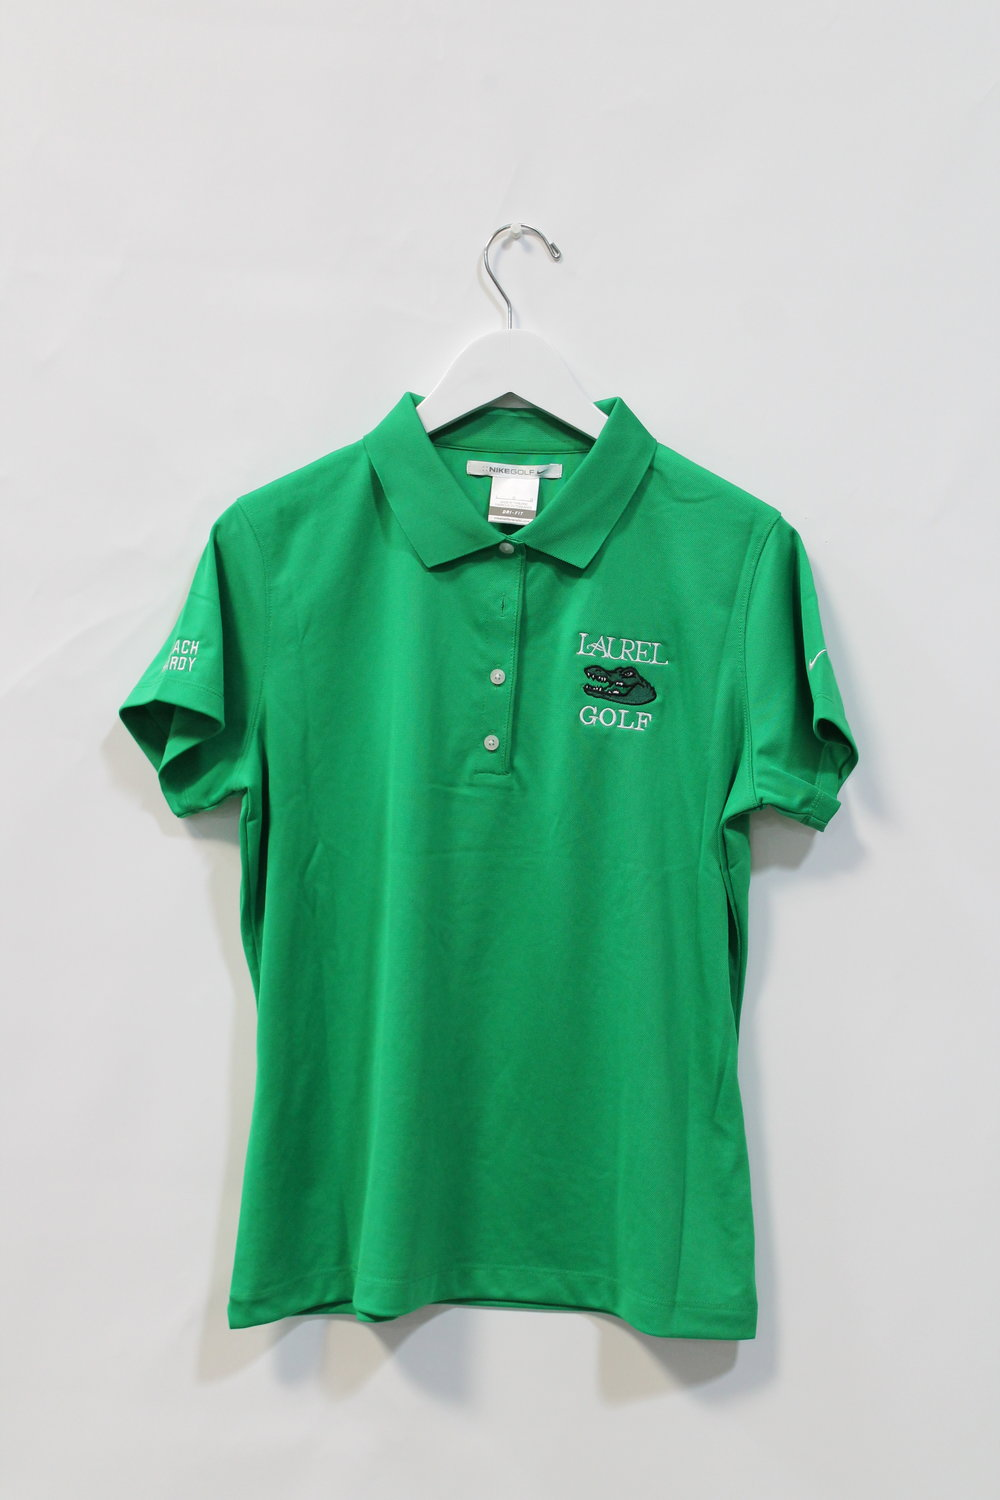 Laurel_Golf_Shirt.JPG